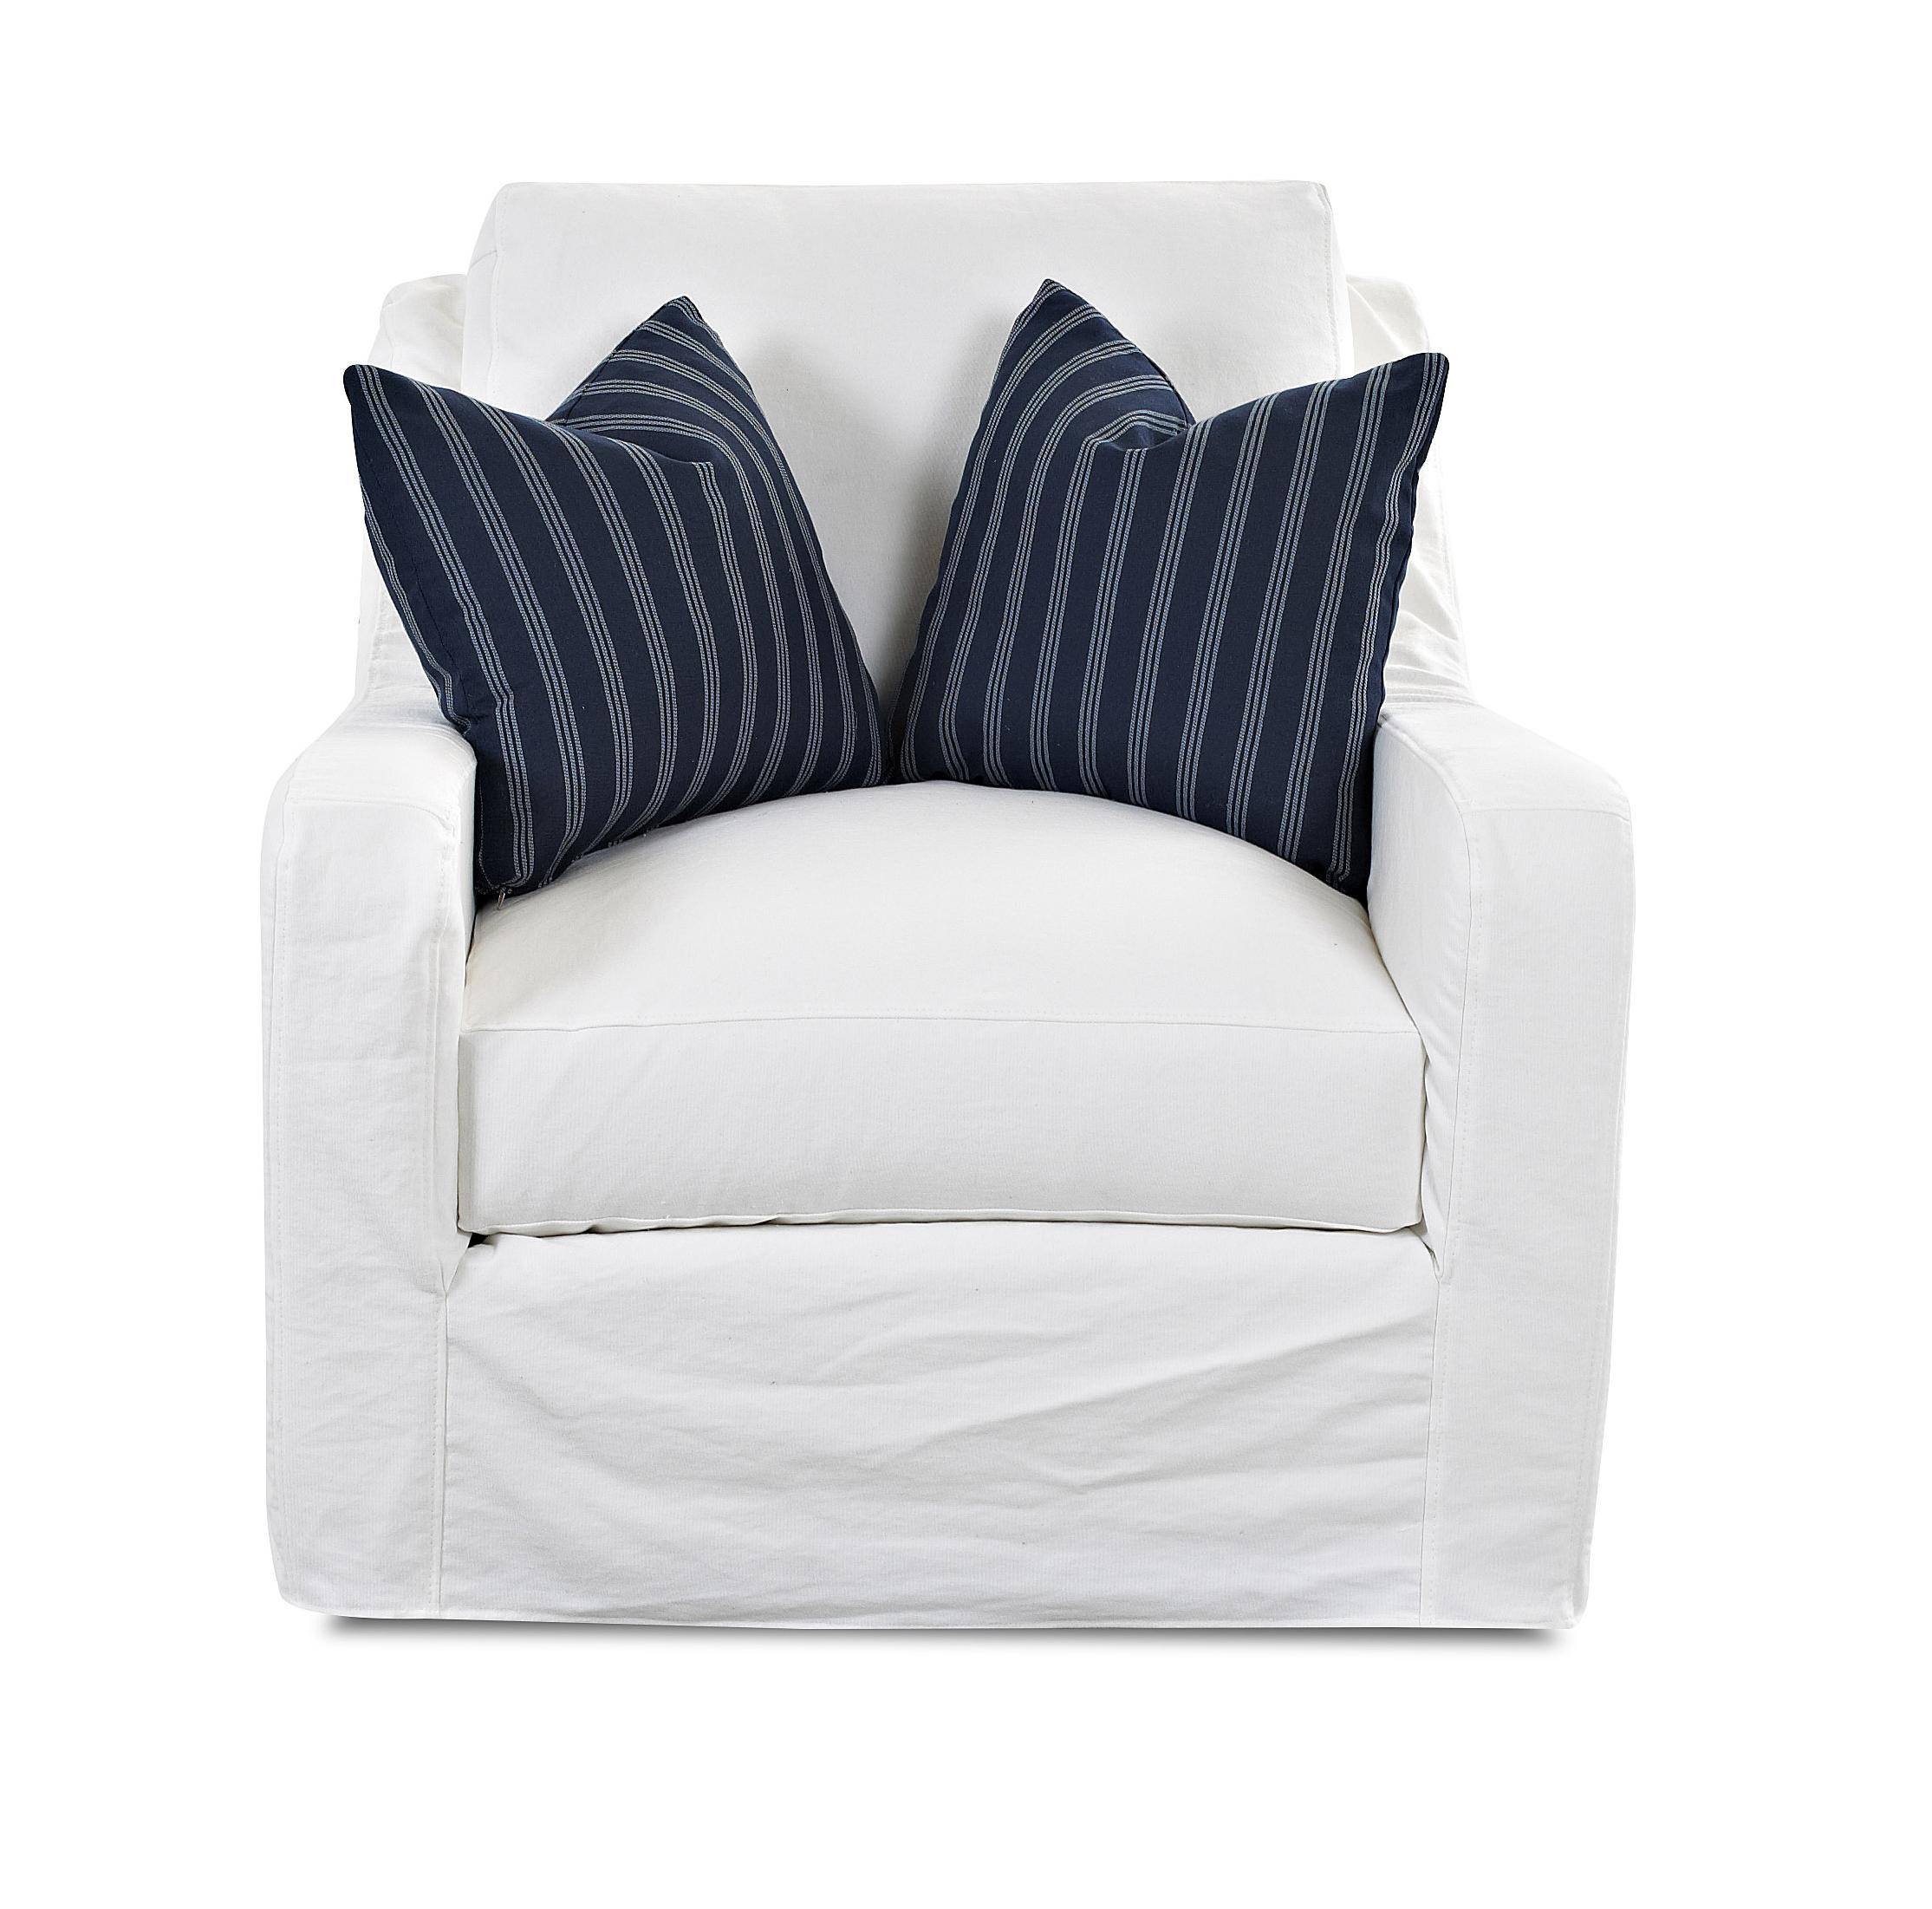 Transitional Big Chair with Slip Cover